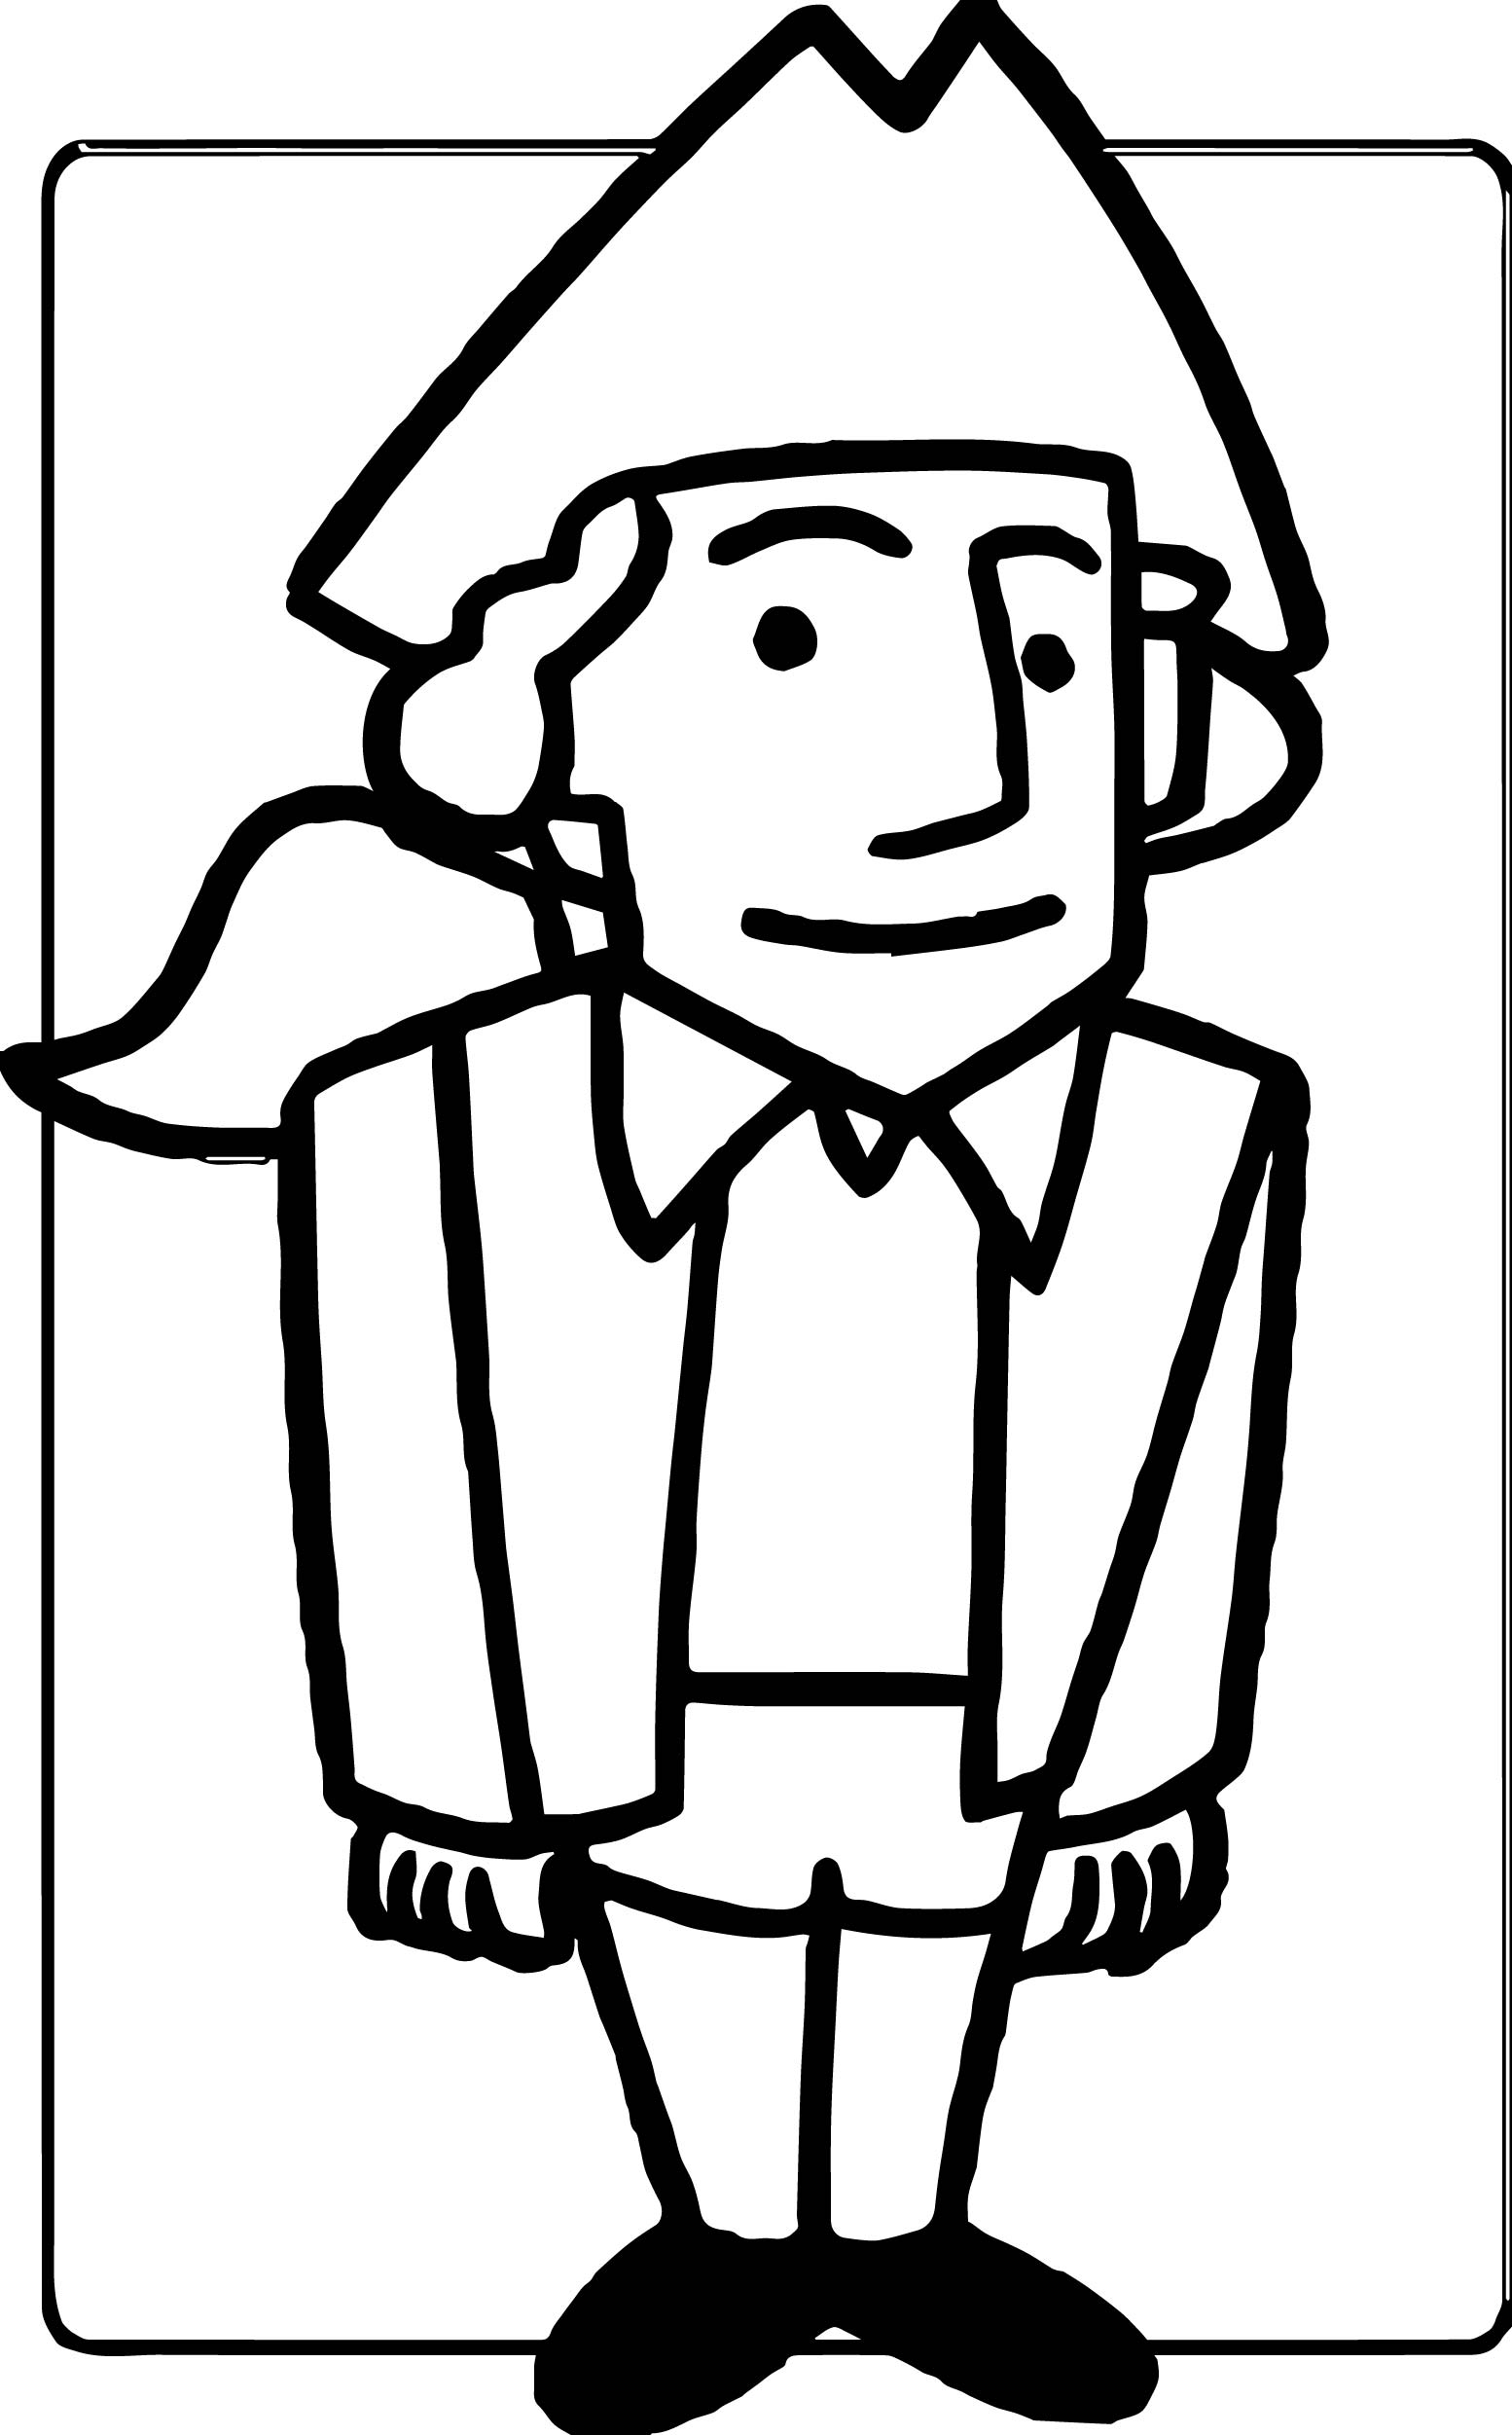 revolutionary war coloring pages american revolution coloring pages at getcoloringscom war pages coloring revolutionary